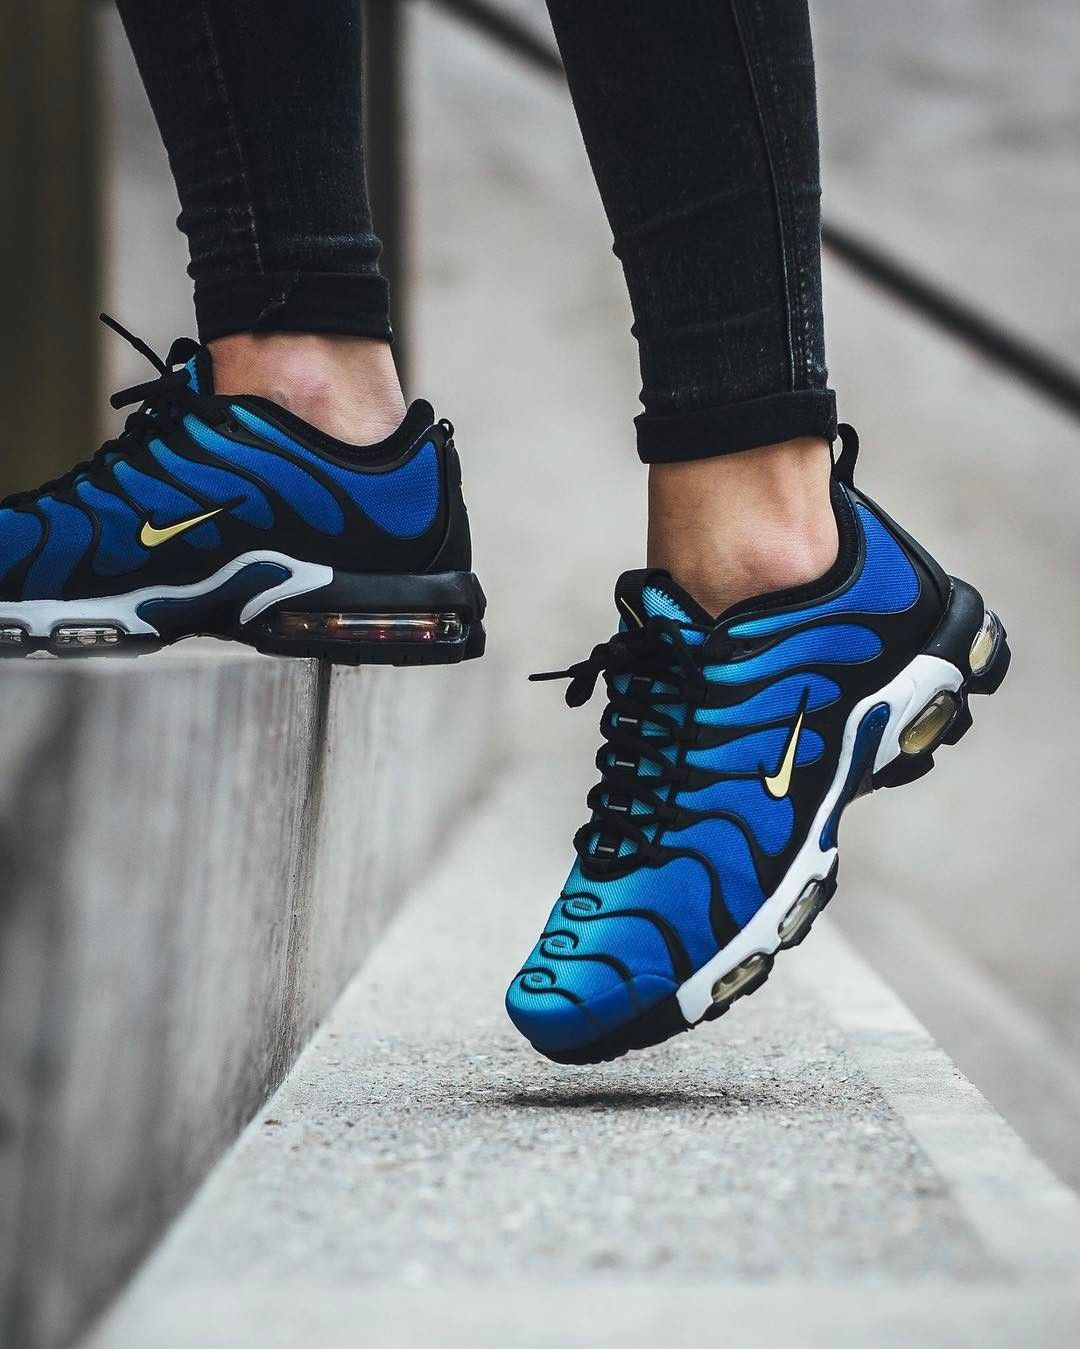 Nike Air Max TN x Ultra Hyper Blue | Shoes, Nike air max